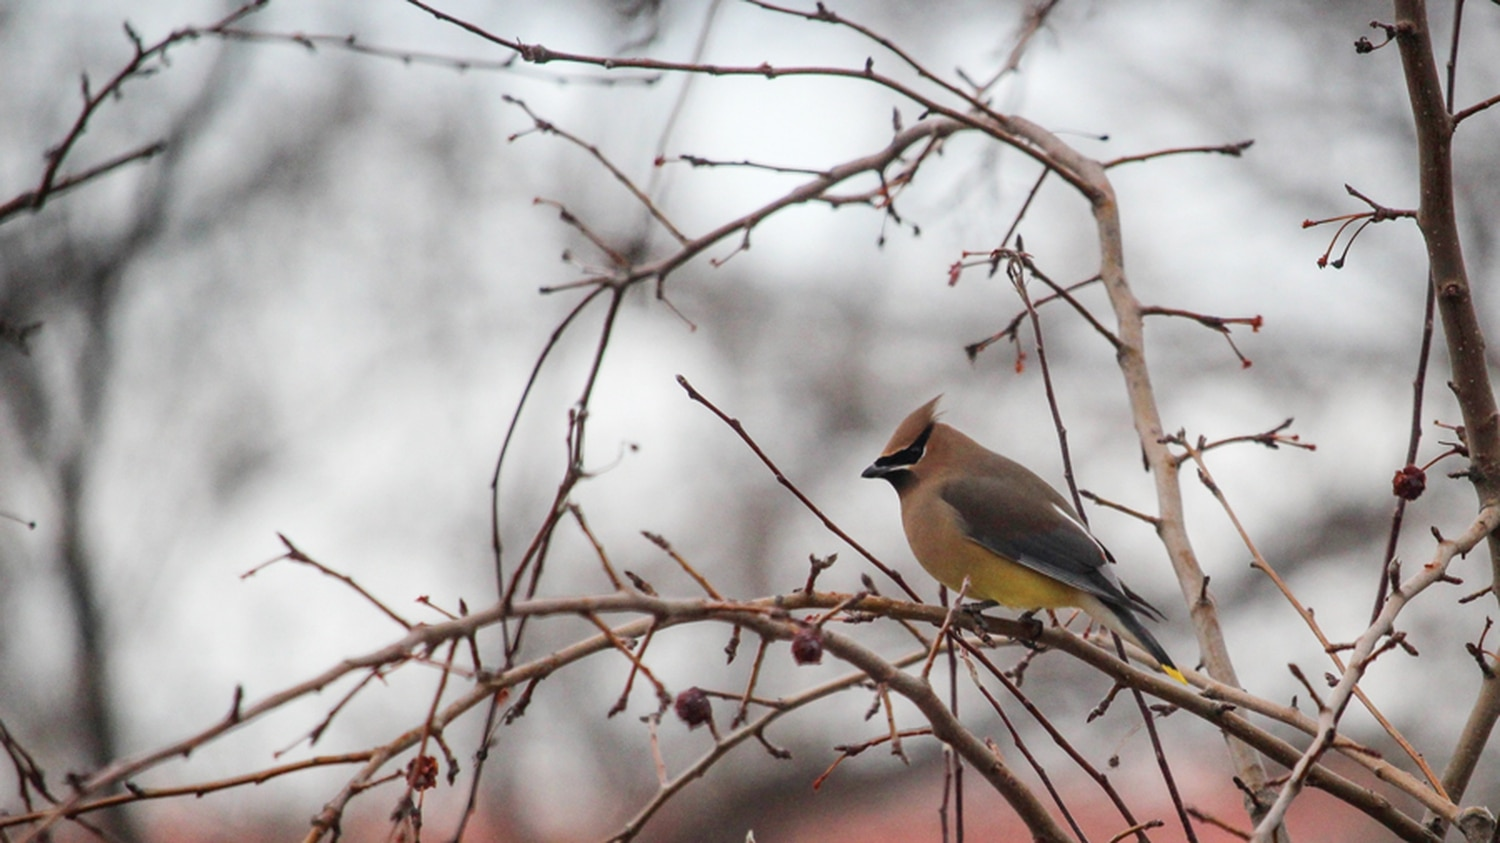 Neighborhood birds like this cedar waxwing are sounding off. All you have to do is listen.